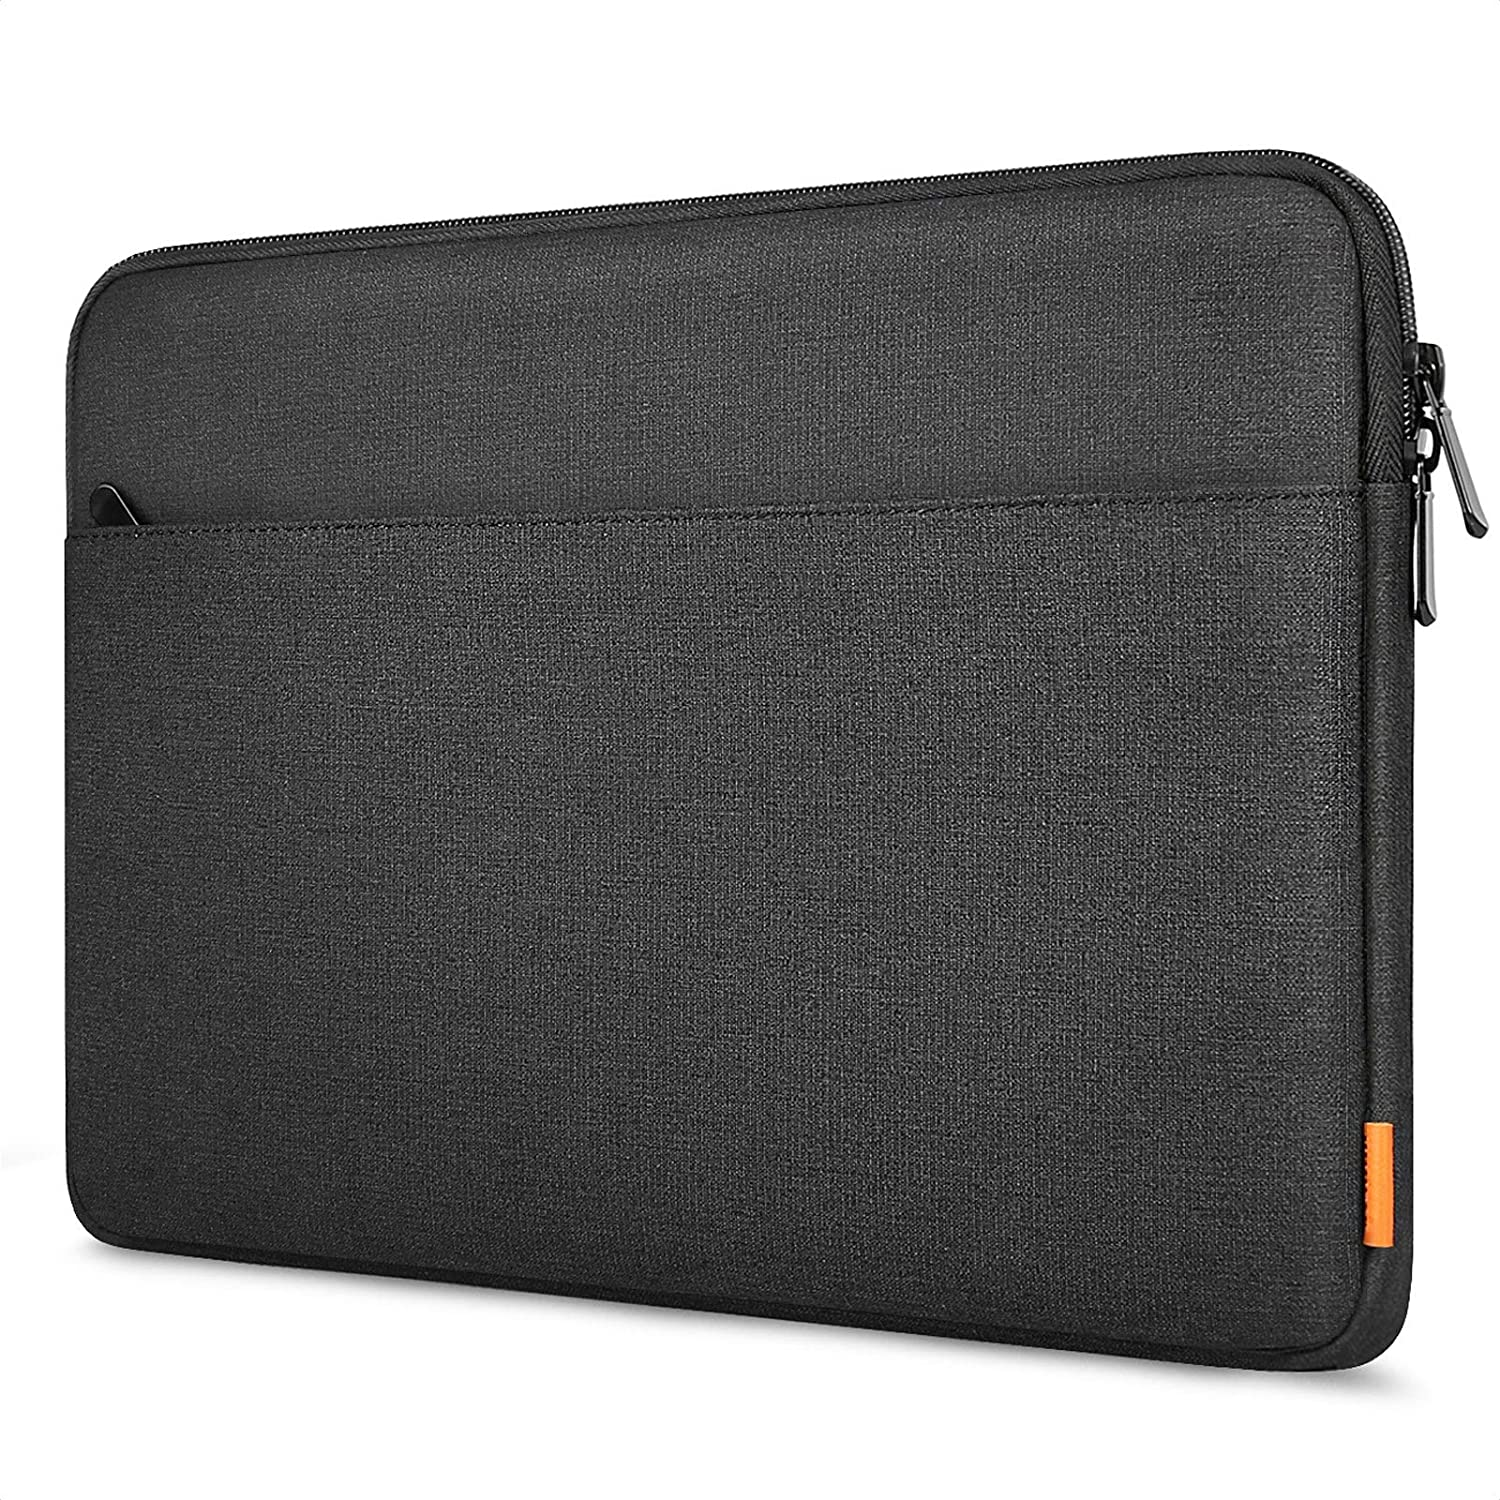 14 Inch Laptop Sleeve Case Bag LB01005-14, Black - Inateck Backpacks